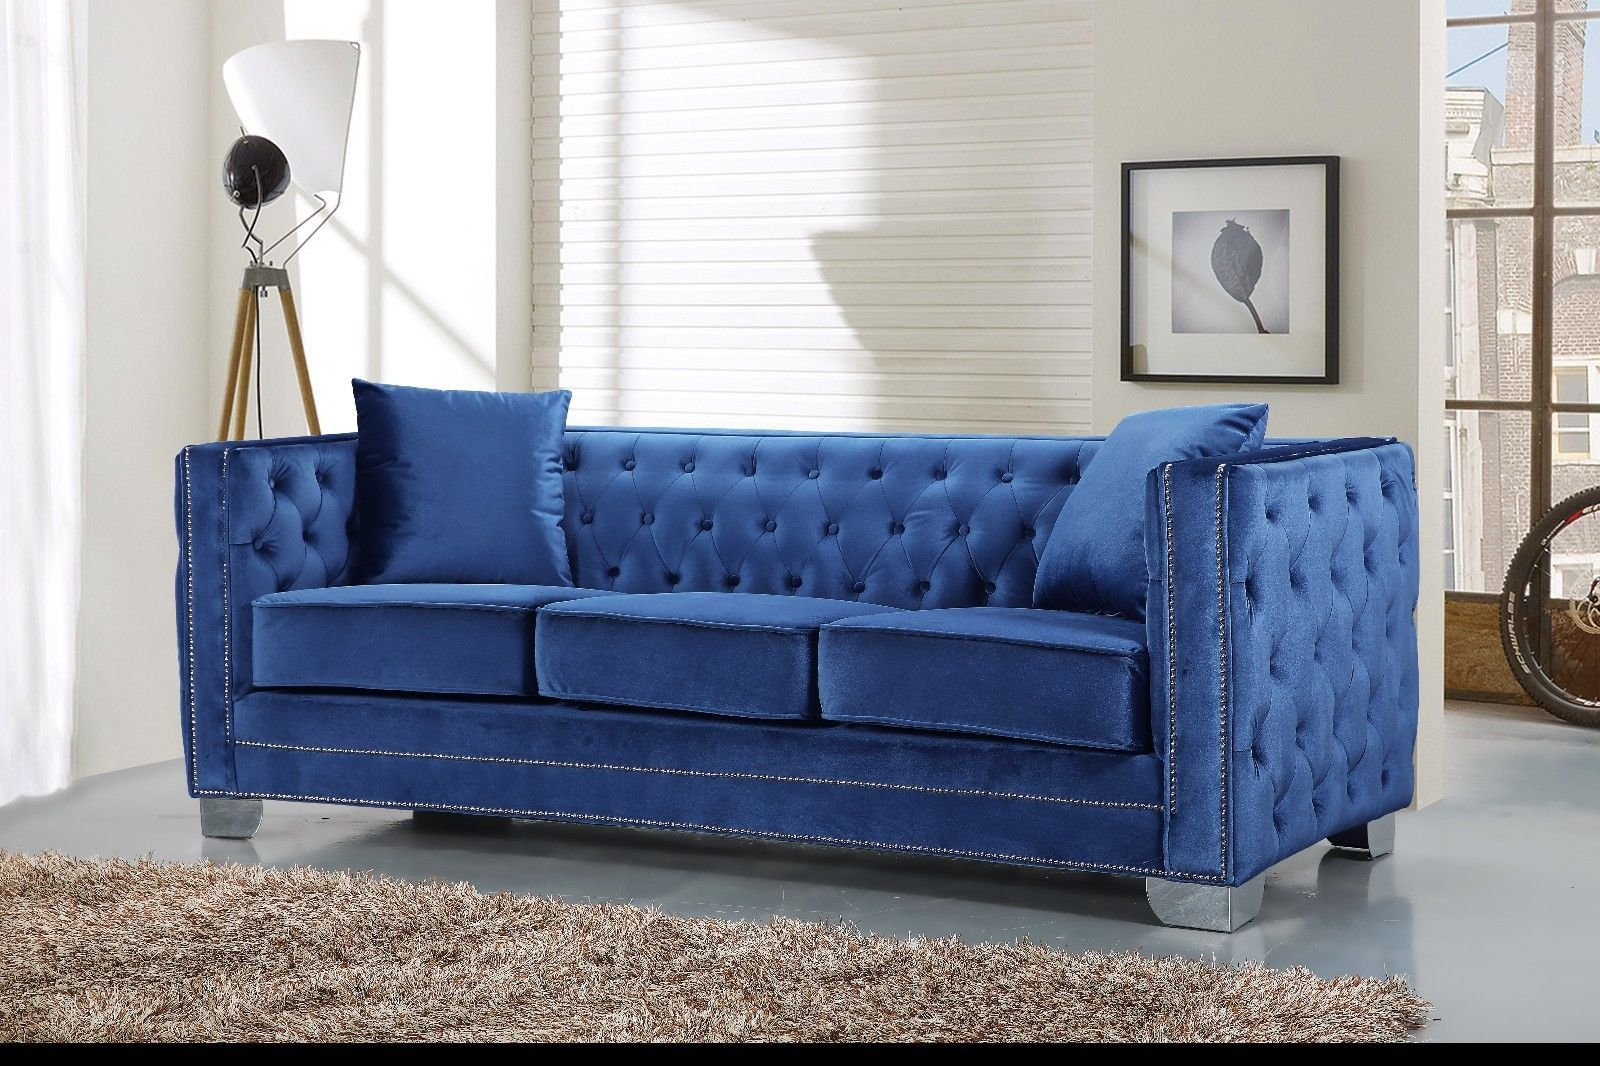 Meridian 648 Light Blue Velvet Living Room Sofa Set 2pc.Chic Contemporary Style